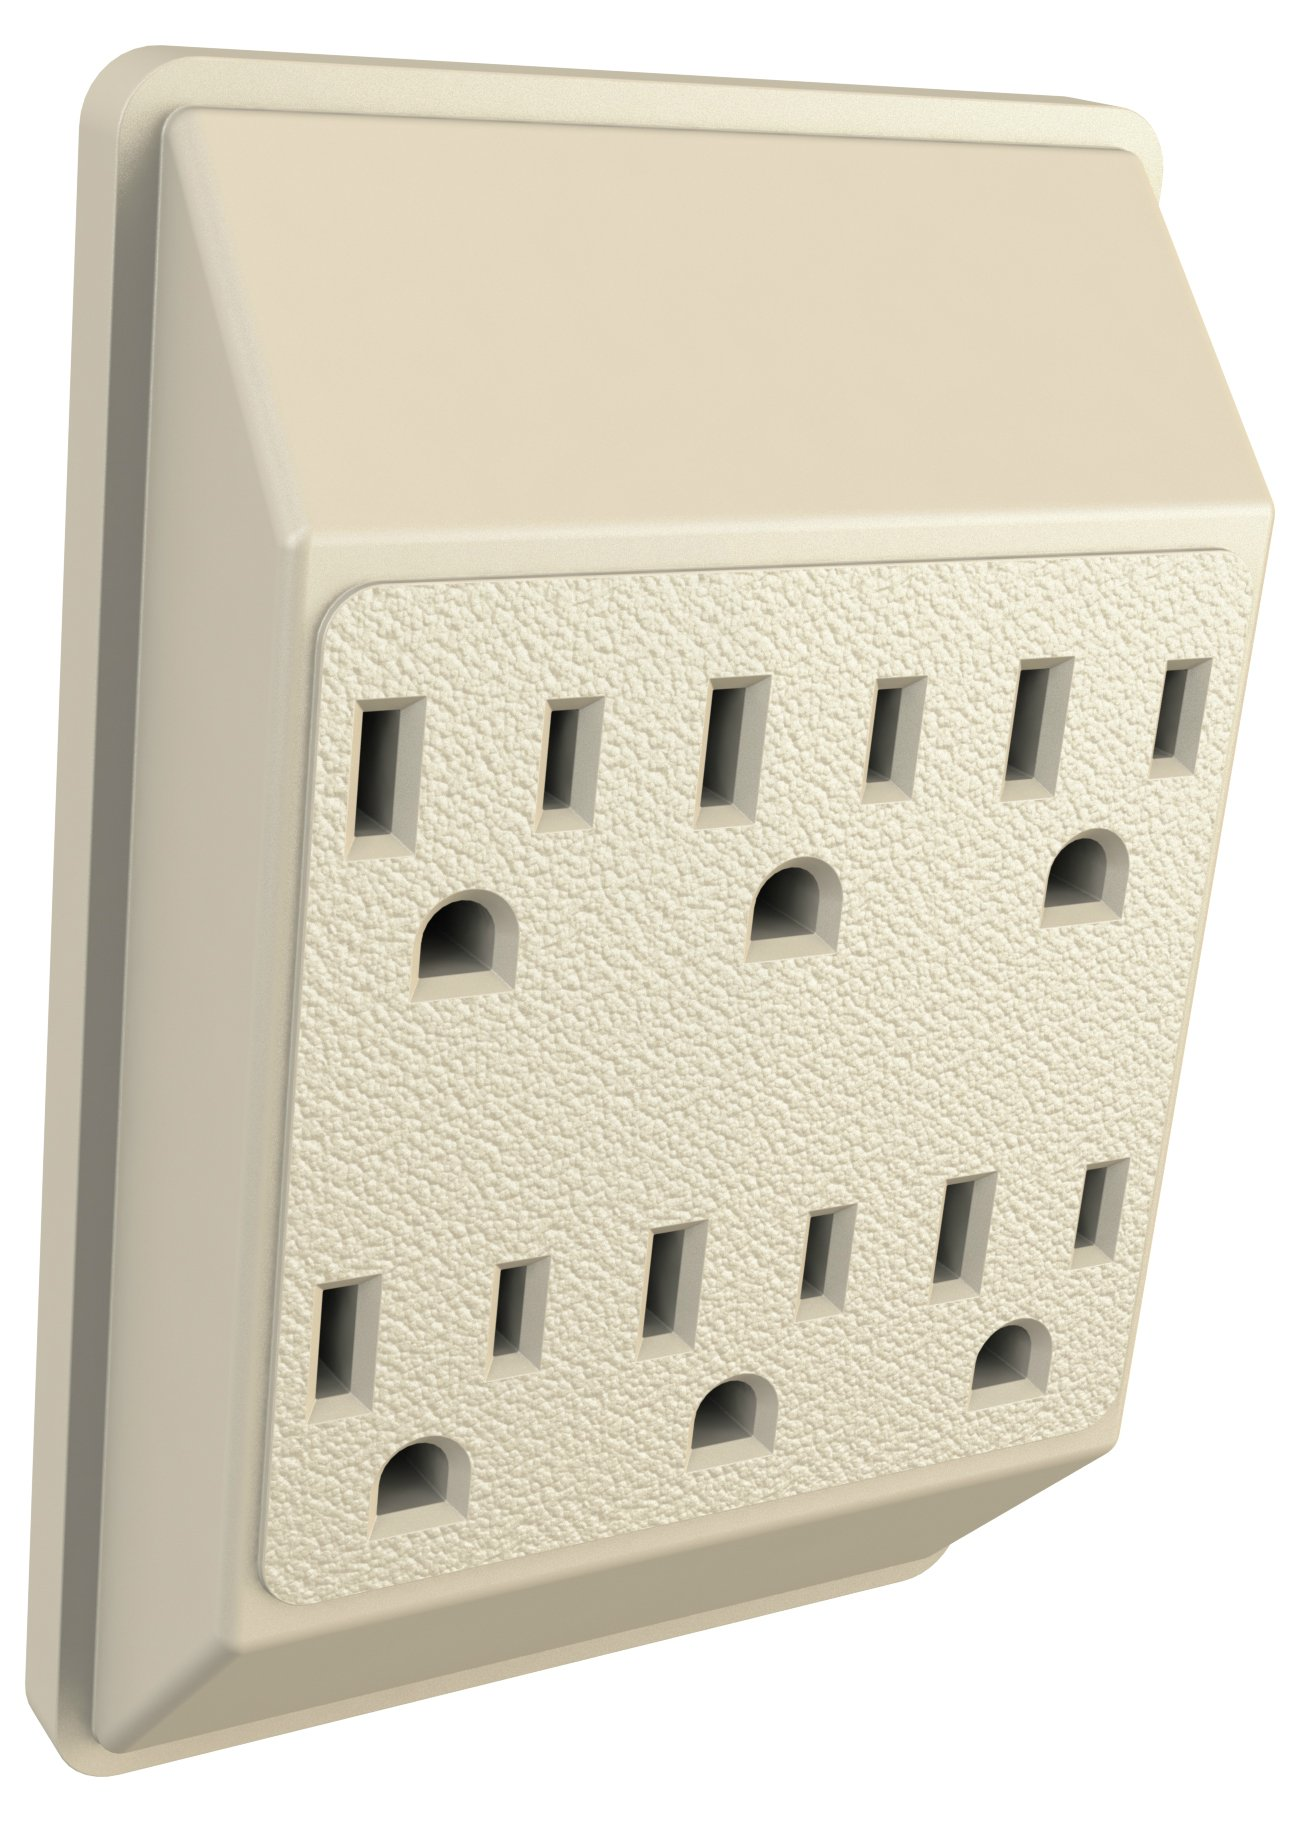 6 Outlet Extender Wall Adapter - Multi Plug Splitter Grounded Electrical Converter Slots for Heavy Duty Grounding for Kitchen, Household, Workshops, and Appliances